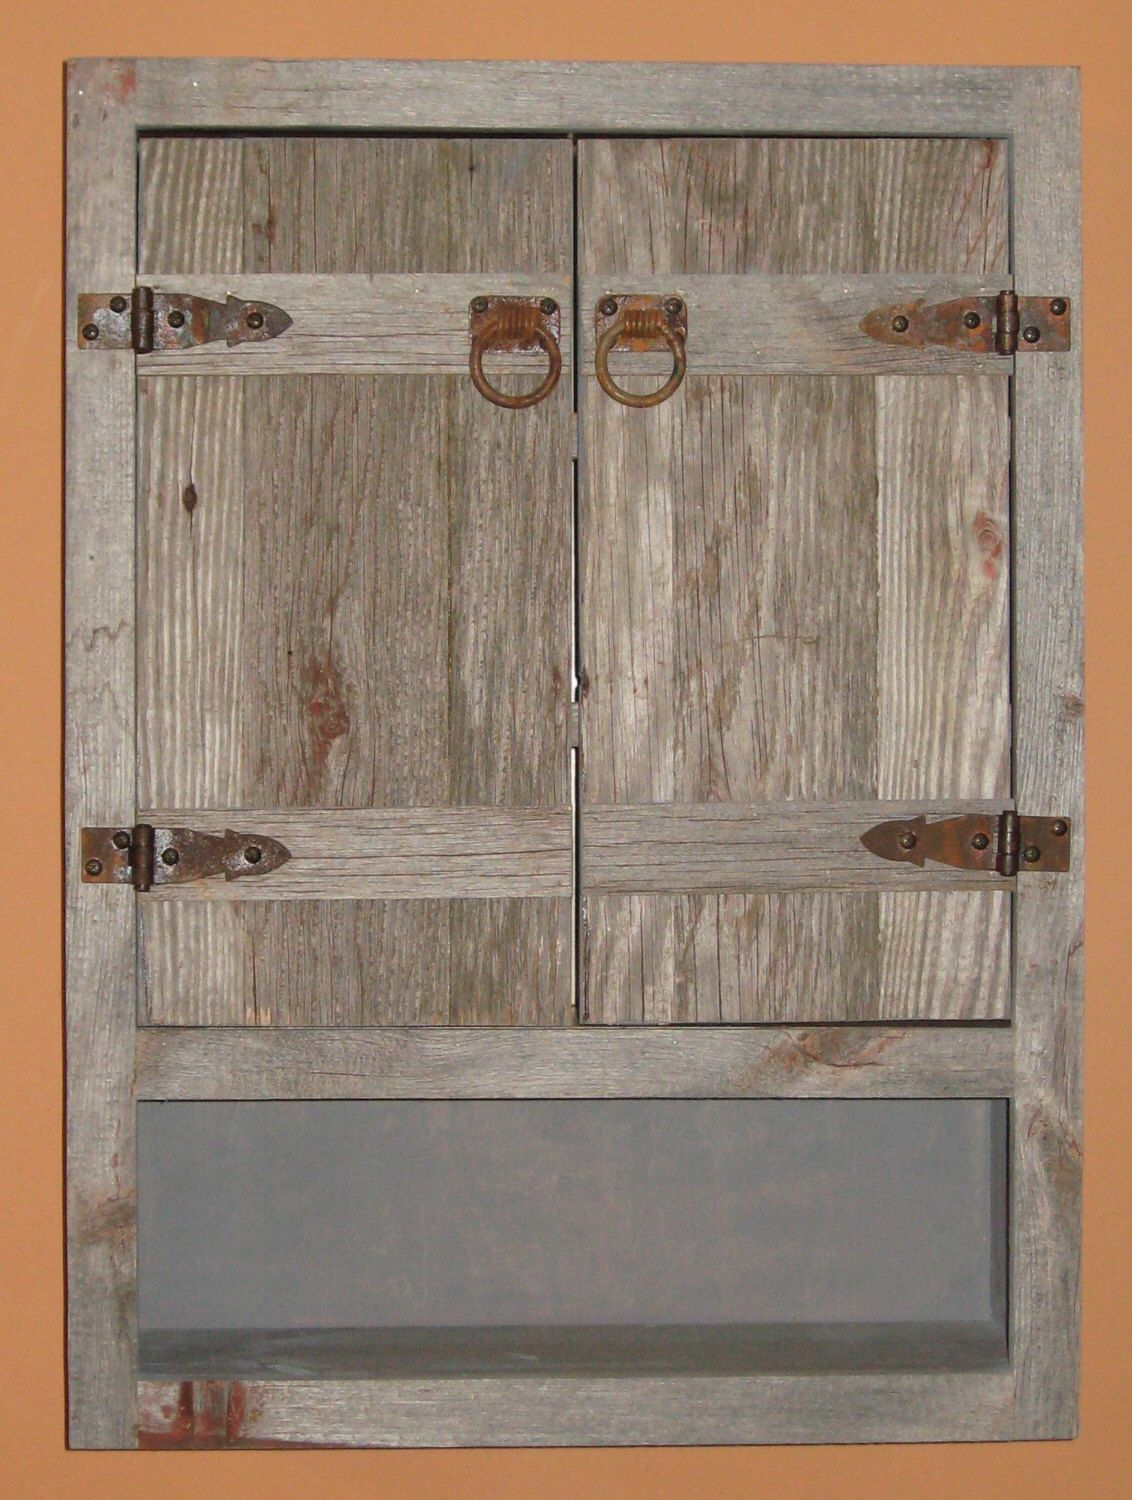 Weathered Wood Toilet Cabinet Rustic Toilet Cabinet Rustic Bathroom By Barnwoodfurniture72 On Etsy Https Rustic Toilets Bathroom Wall Cabinets Wall Cabinet